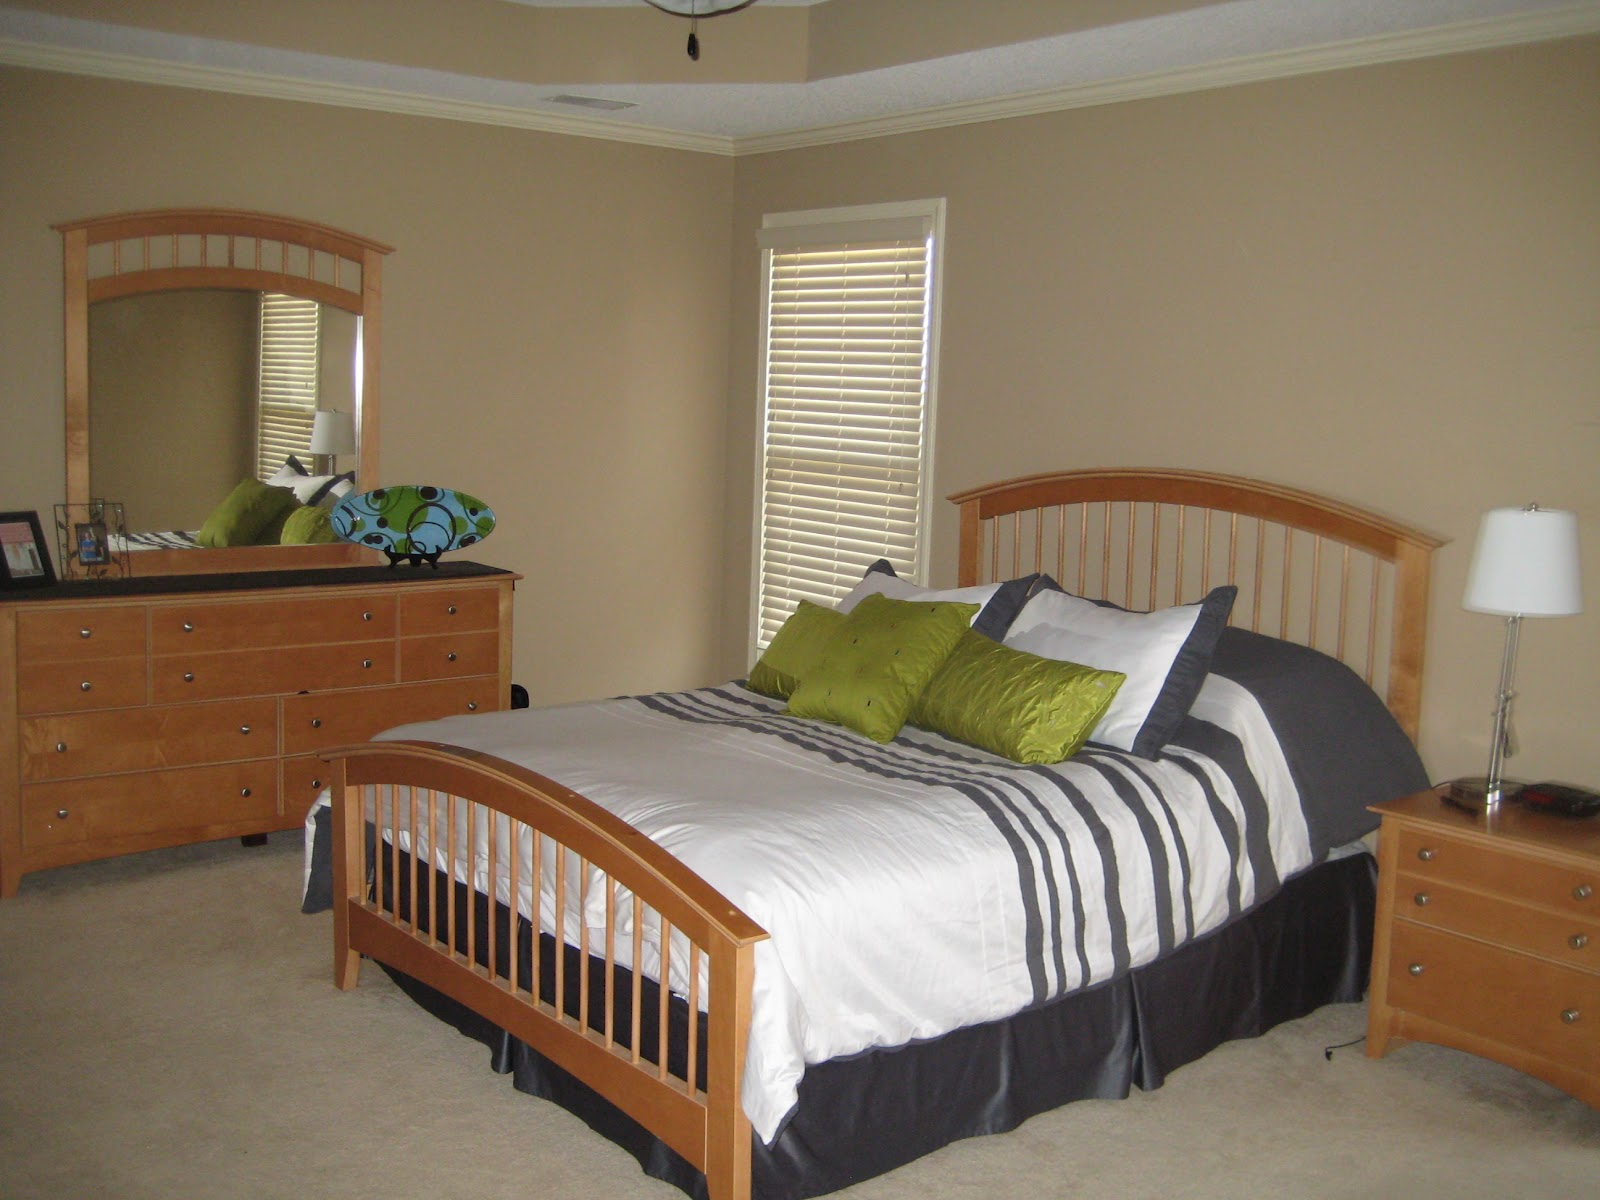 Painted Dreams Of Life, Family & Home: Master Bedroom